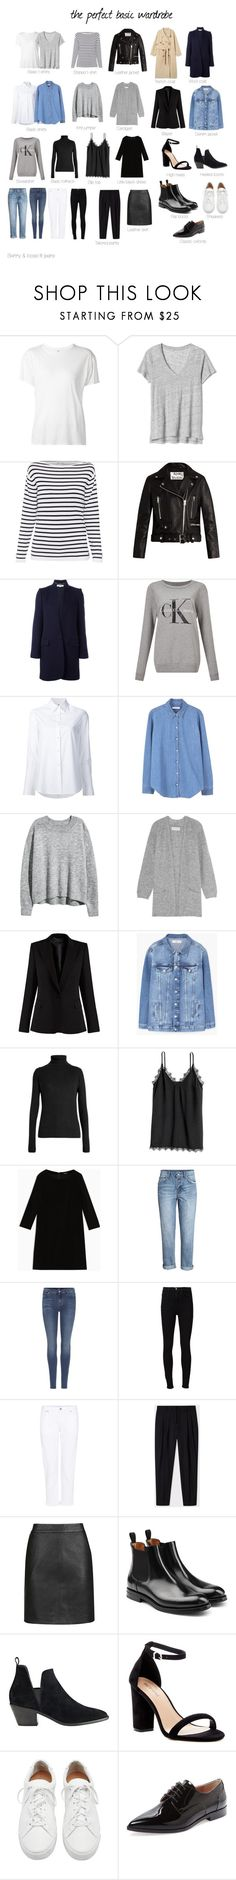 """The perfect basic wardrobe"" by uselessdk on Polyvore featuring R13, Acne Studios, STELLA McCARTNEY, Calvin Klein, Misha Nonoo, MANGO, By Malene Birger, Raey, Max&Co. and 7 For All Mankind"